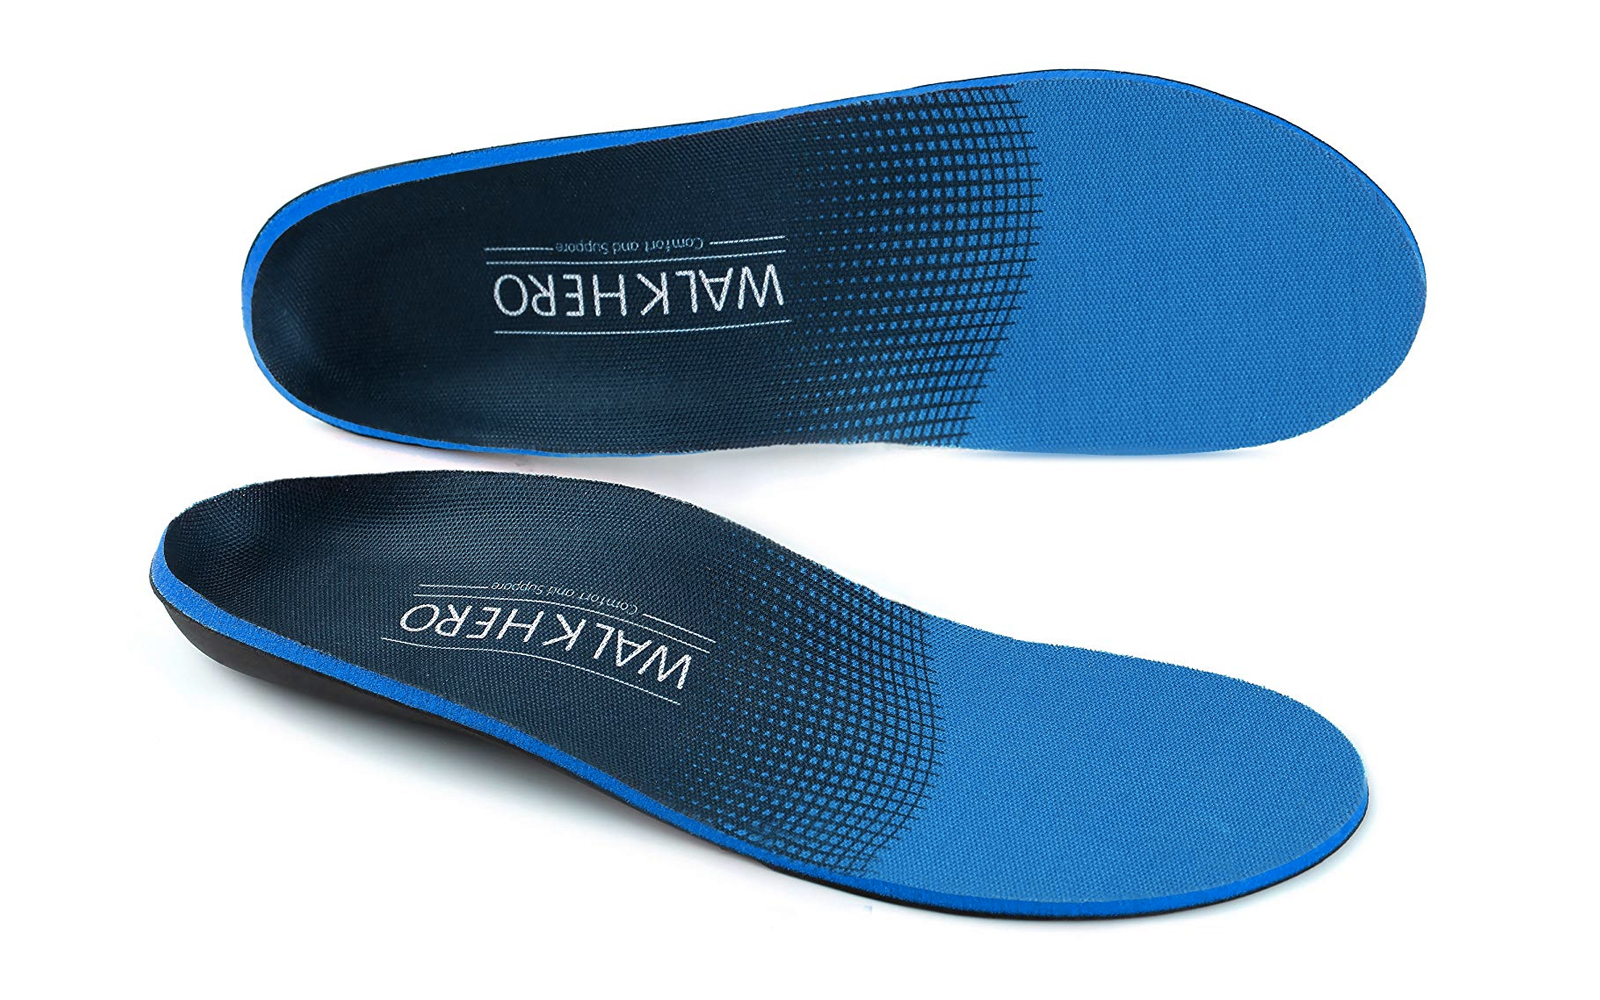 The Best-selling Comfort Insoles and Inserts on Amazon